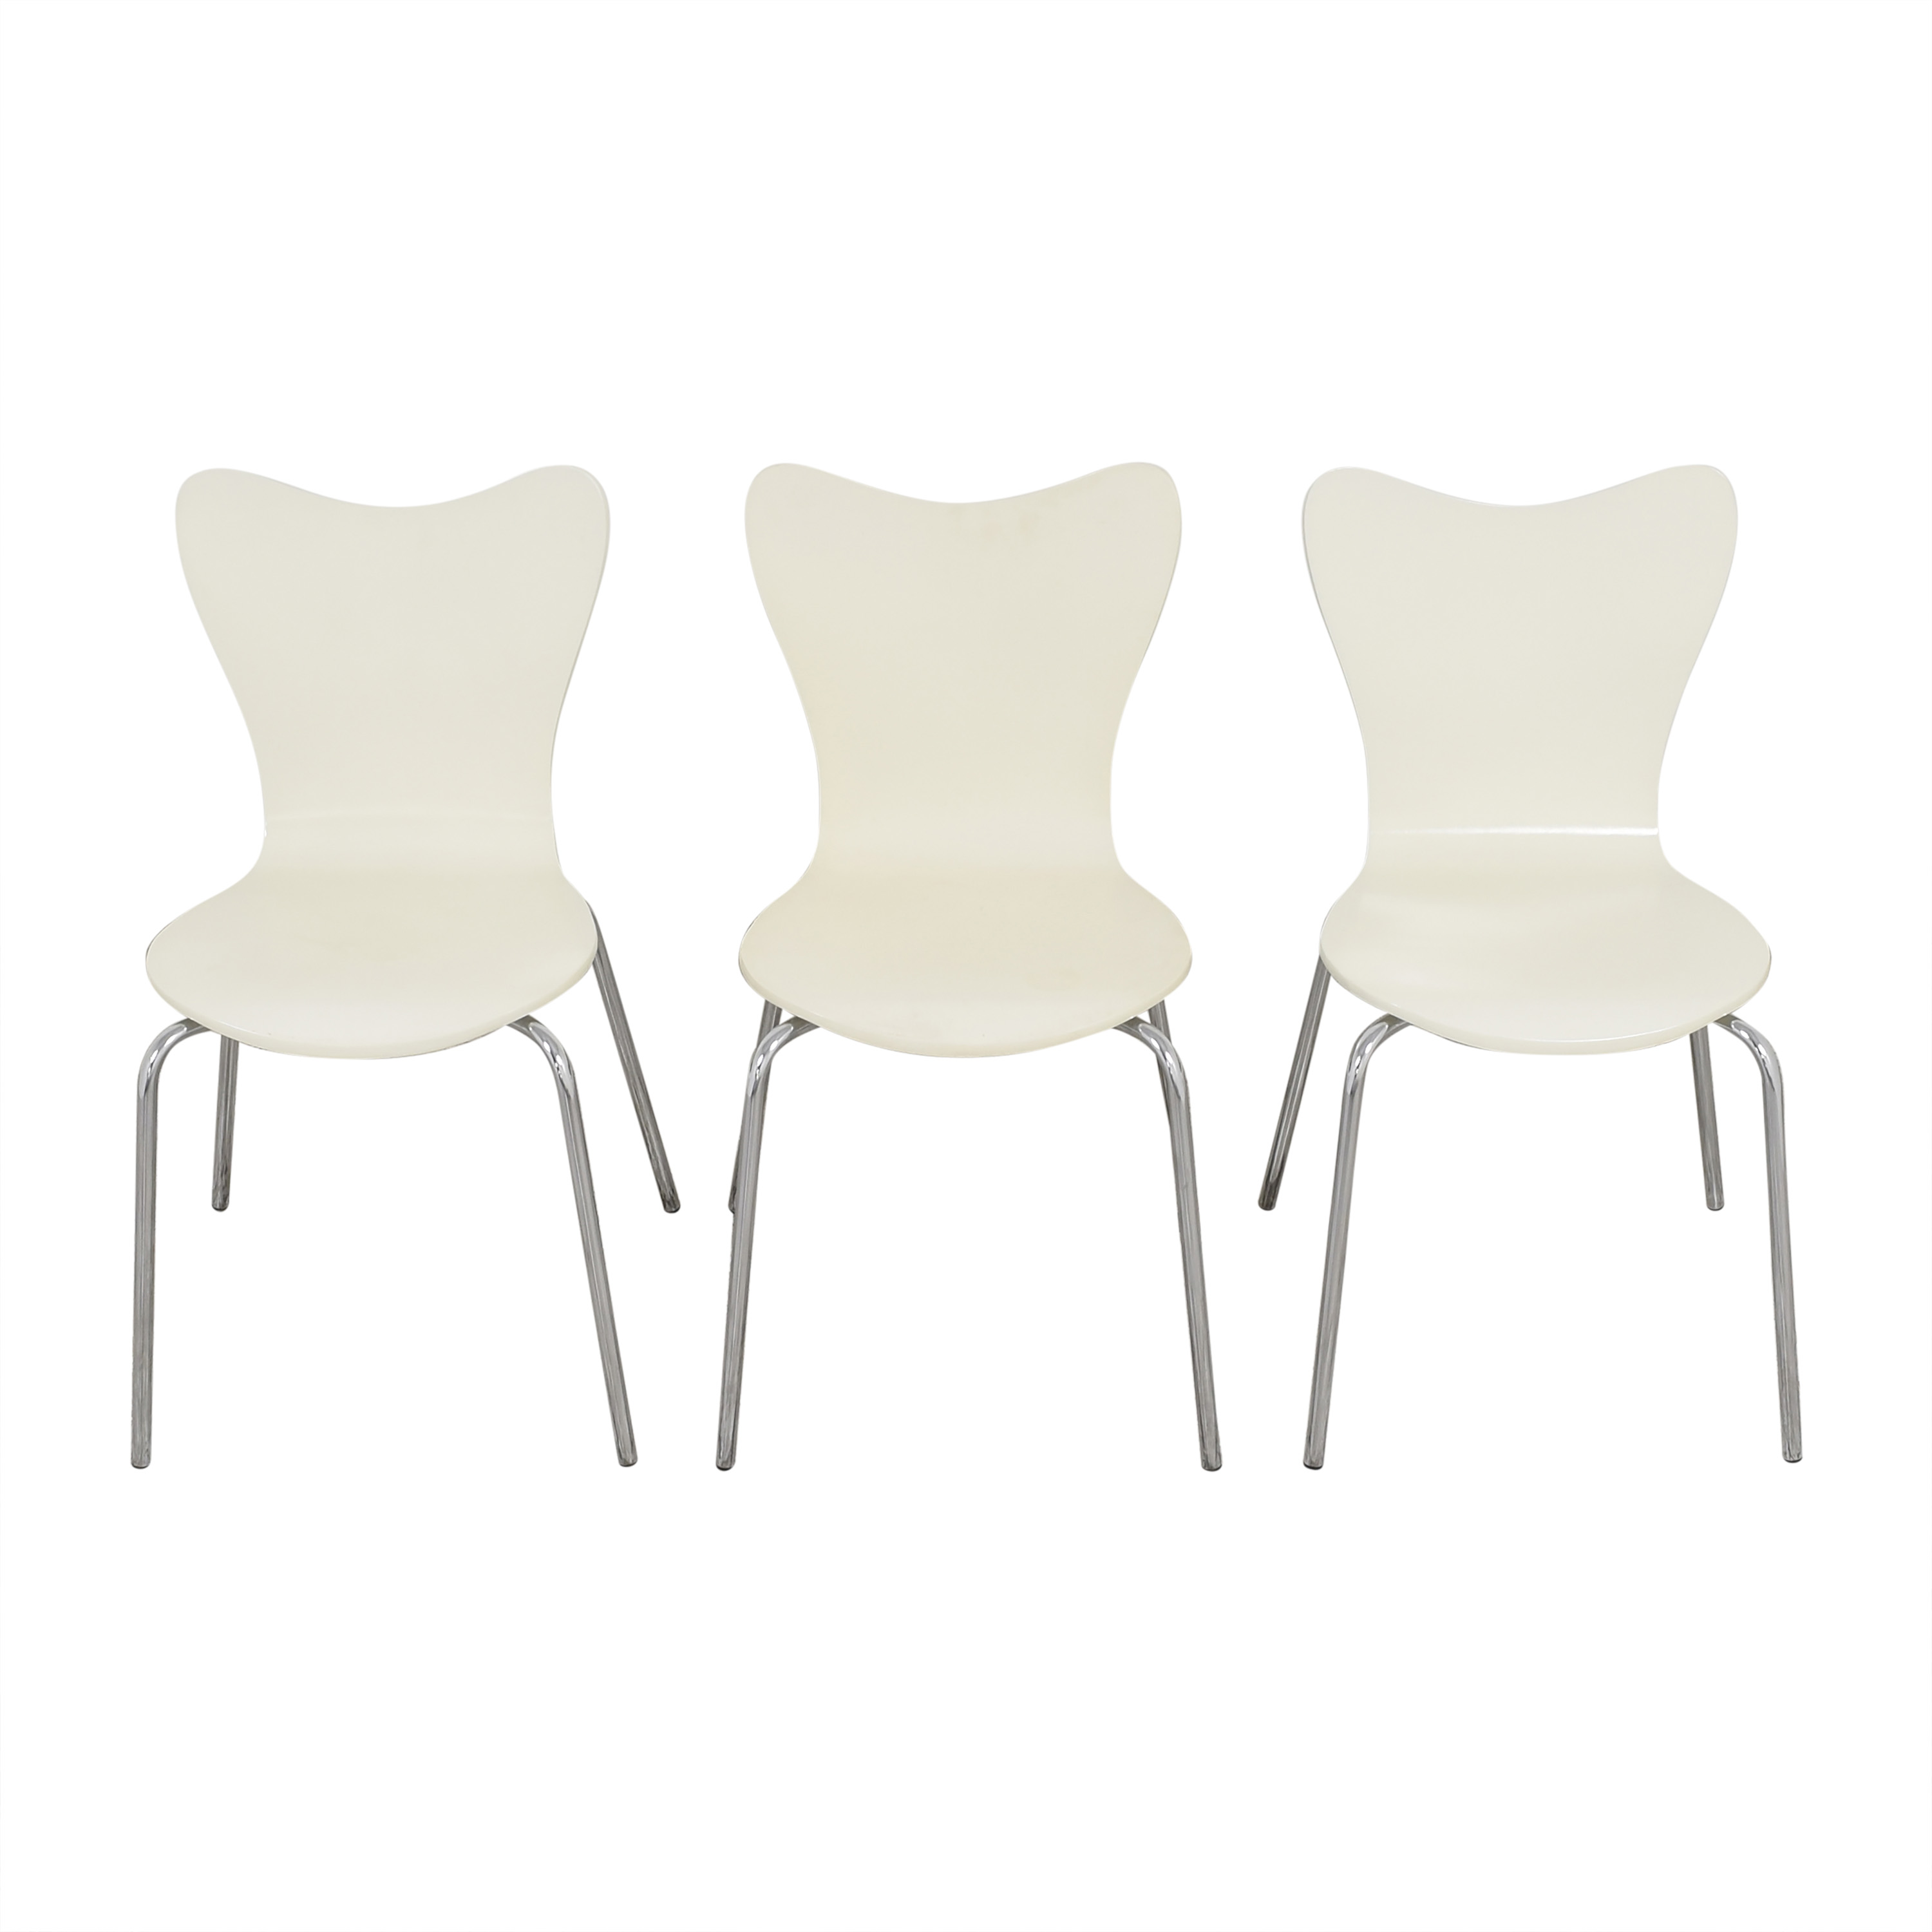 West Elm West Elm Scoop Back Dining Chairs ct